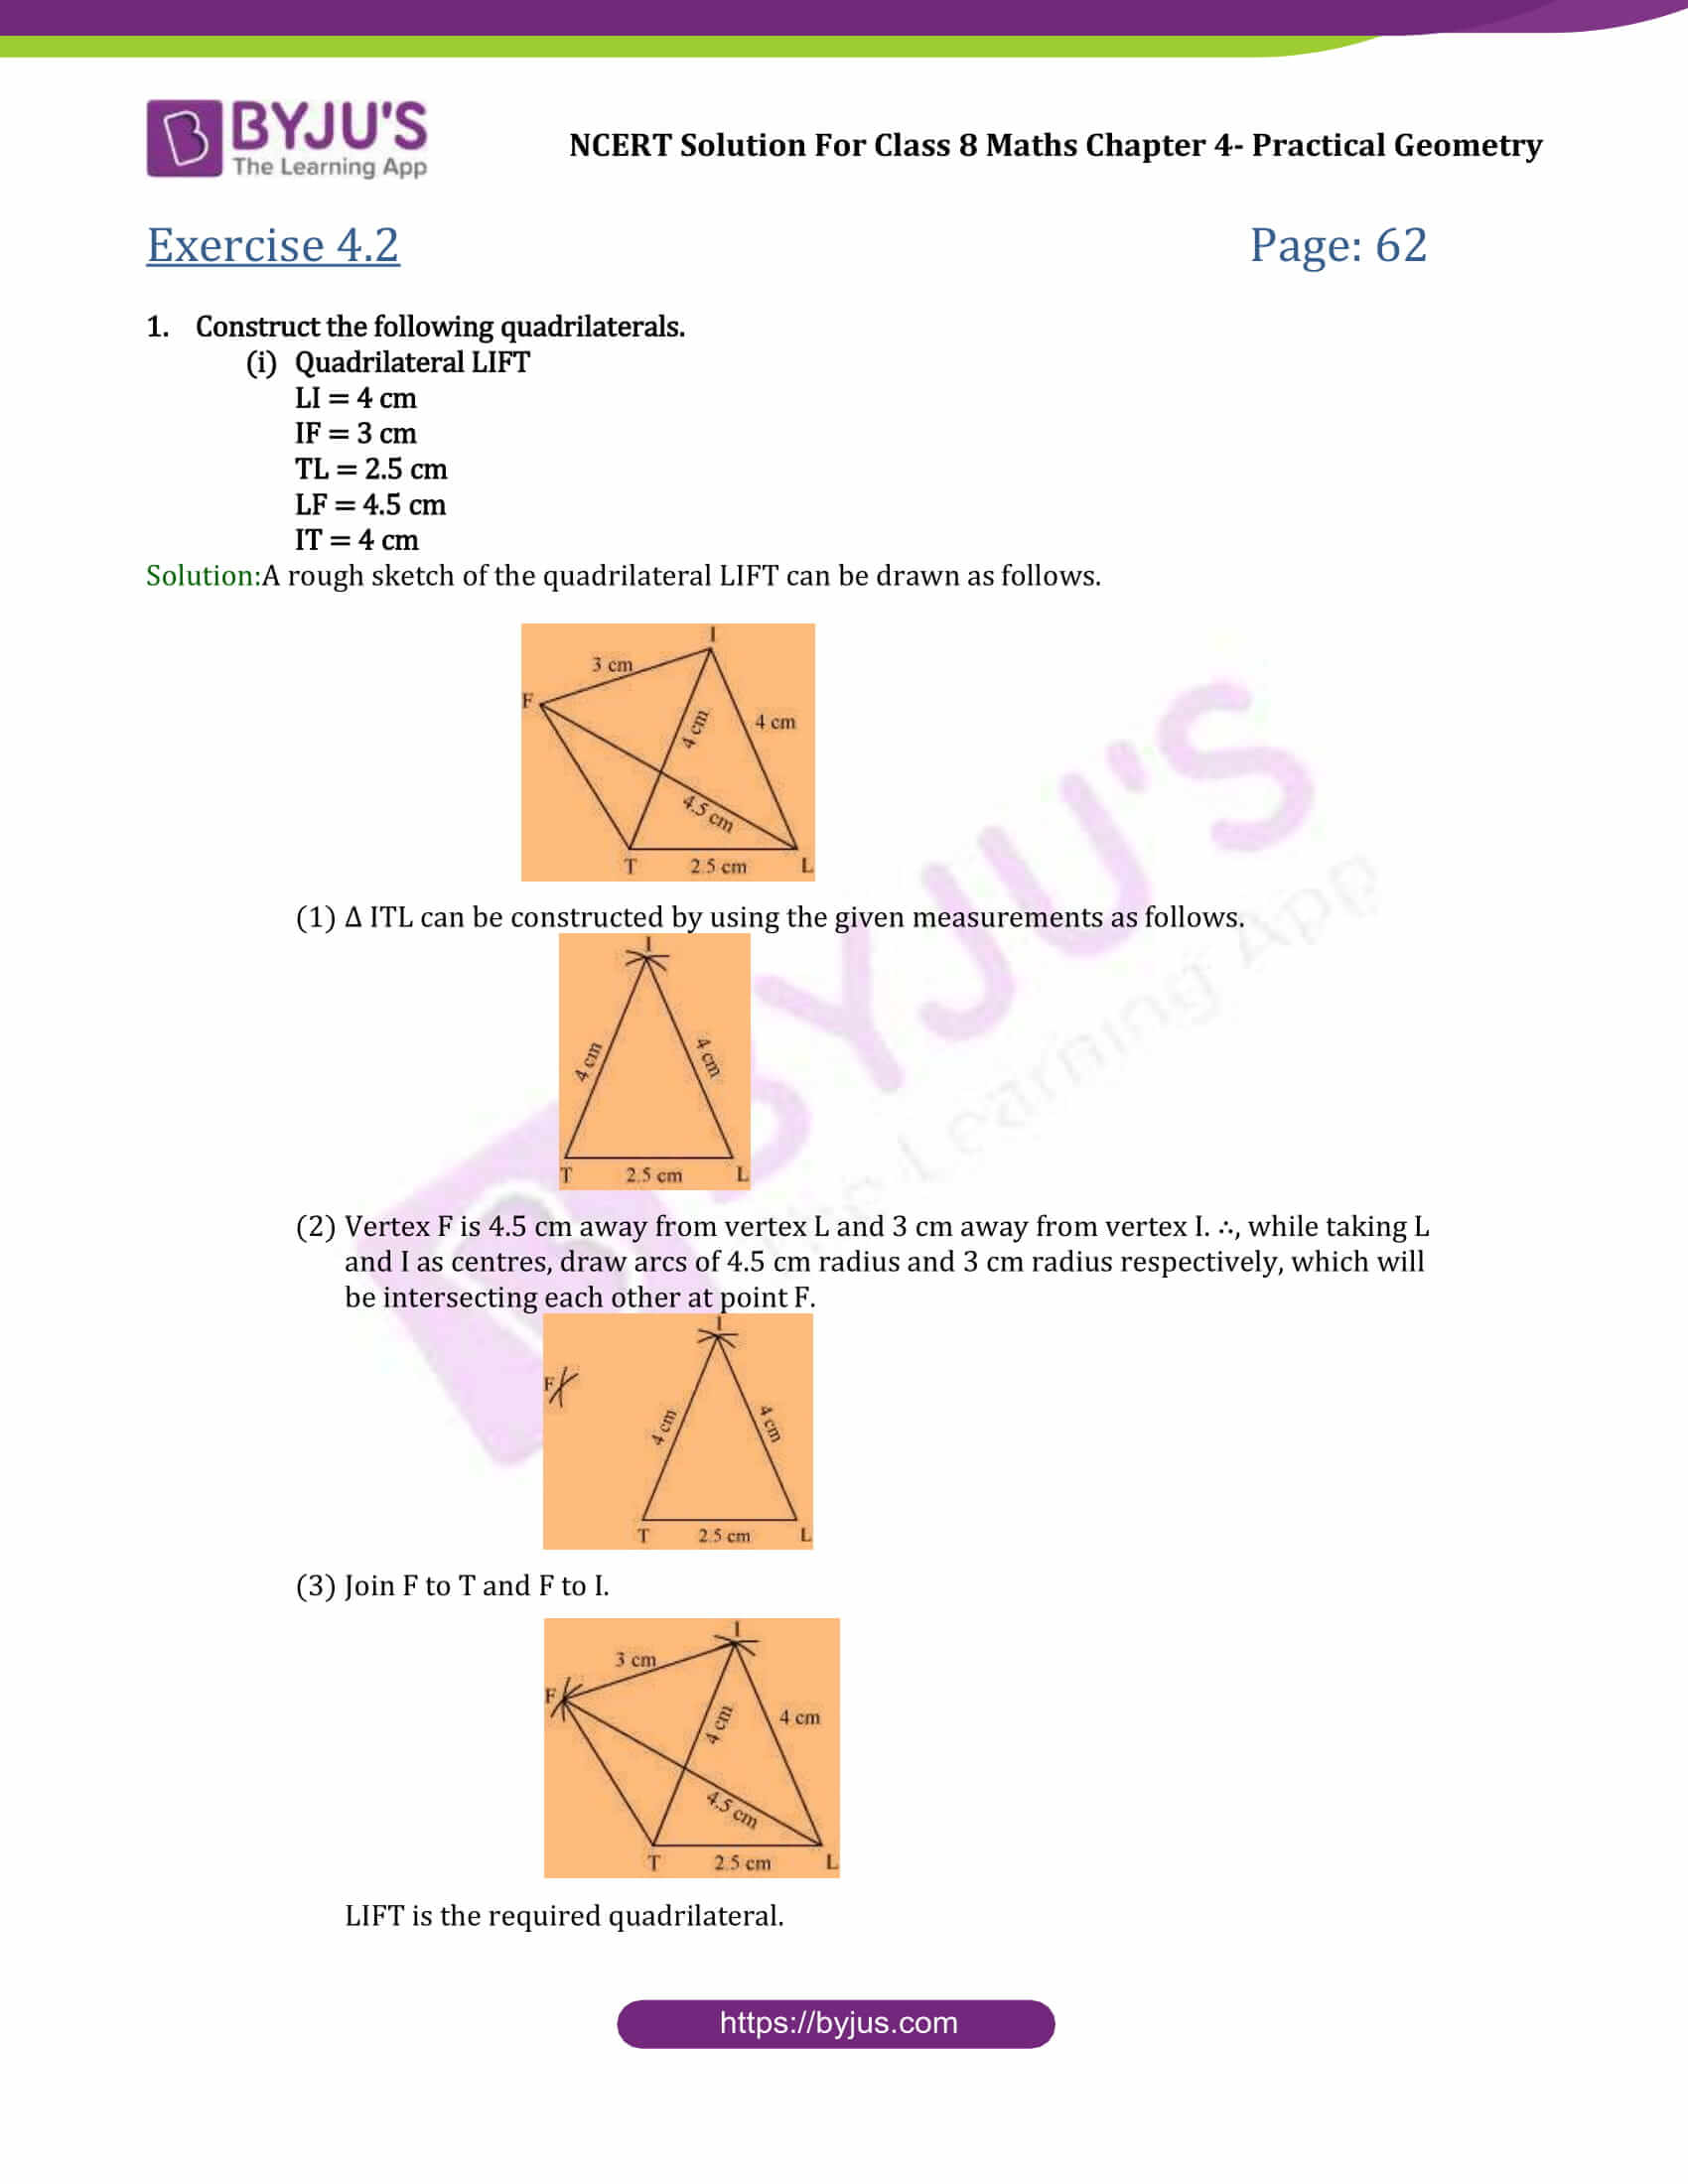 NCERT Solutions for Class 8 Maths Chapter 4 Applied ...